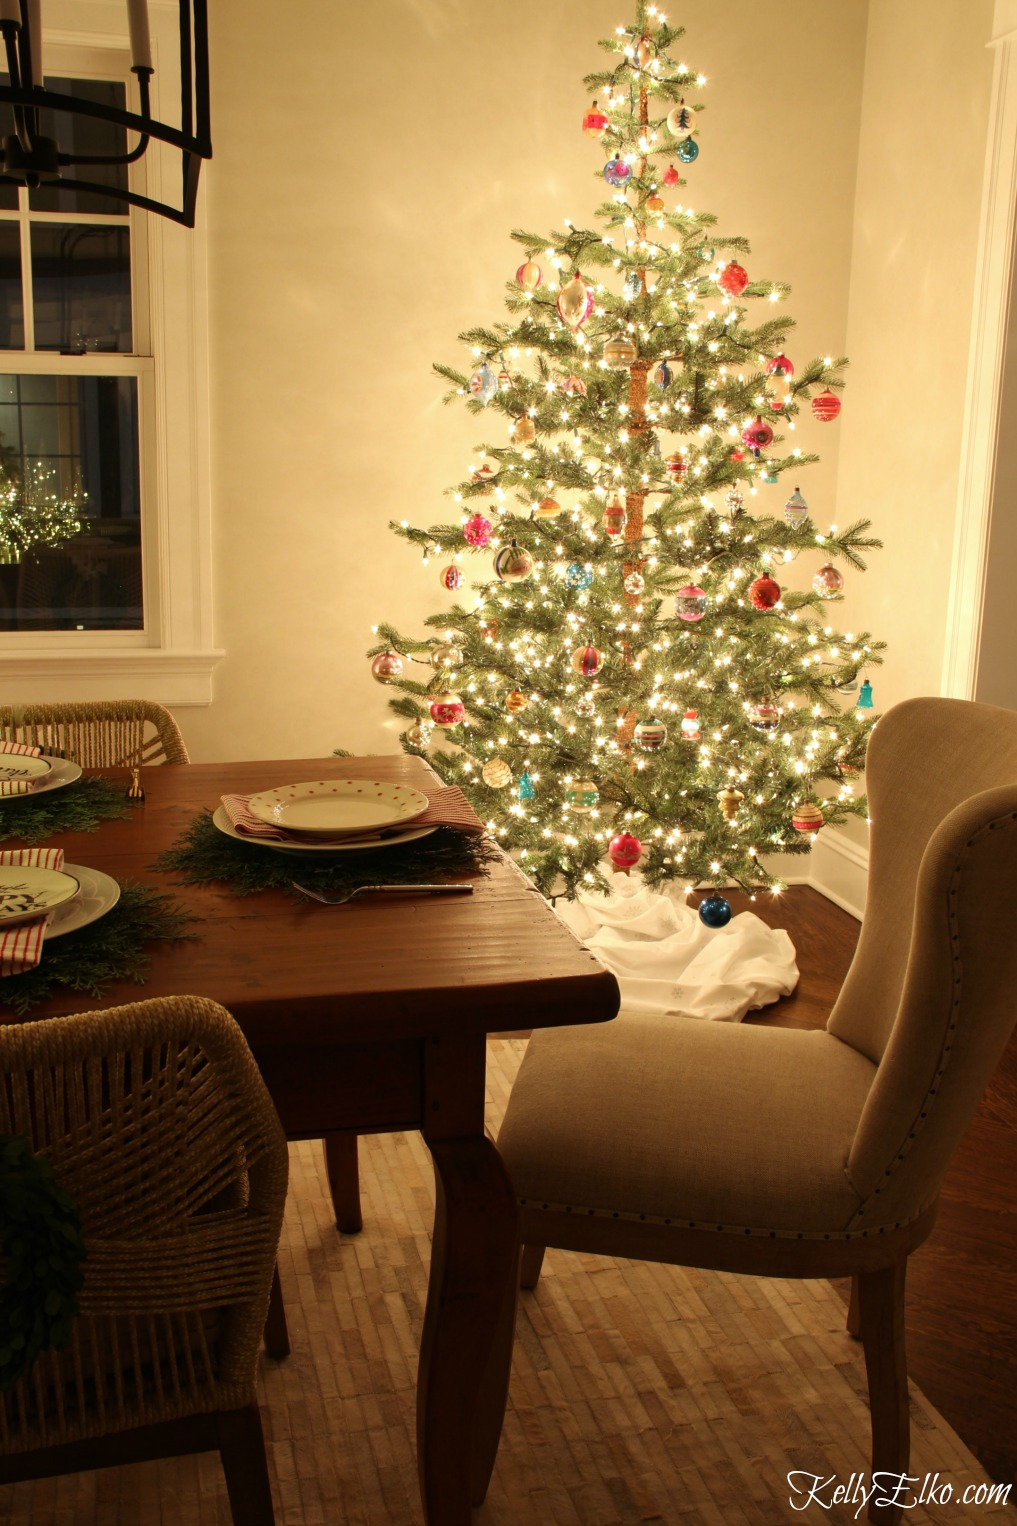 Christmas Nights Tour - see 25 of the best Christmas homes lit up at night! Love this sparkling sparse tree with vintage ornaments kellyelko.com #christmas #christmasdecorating #christmasdecor #christmaslights